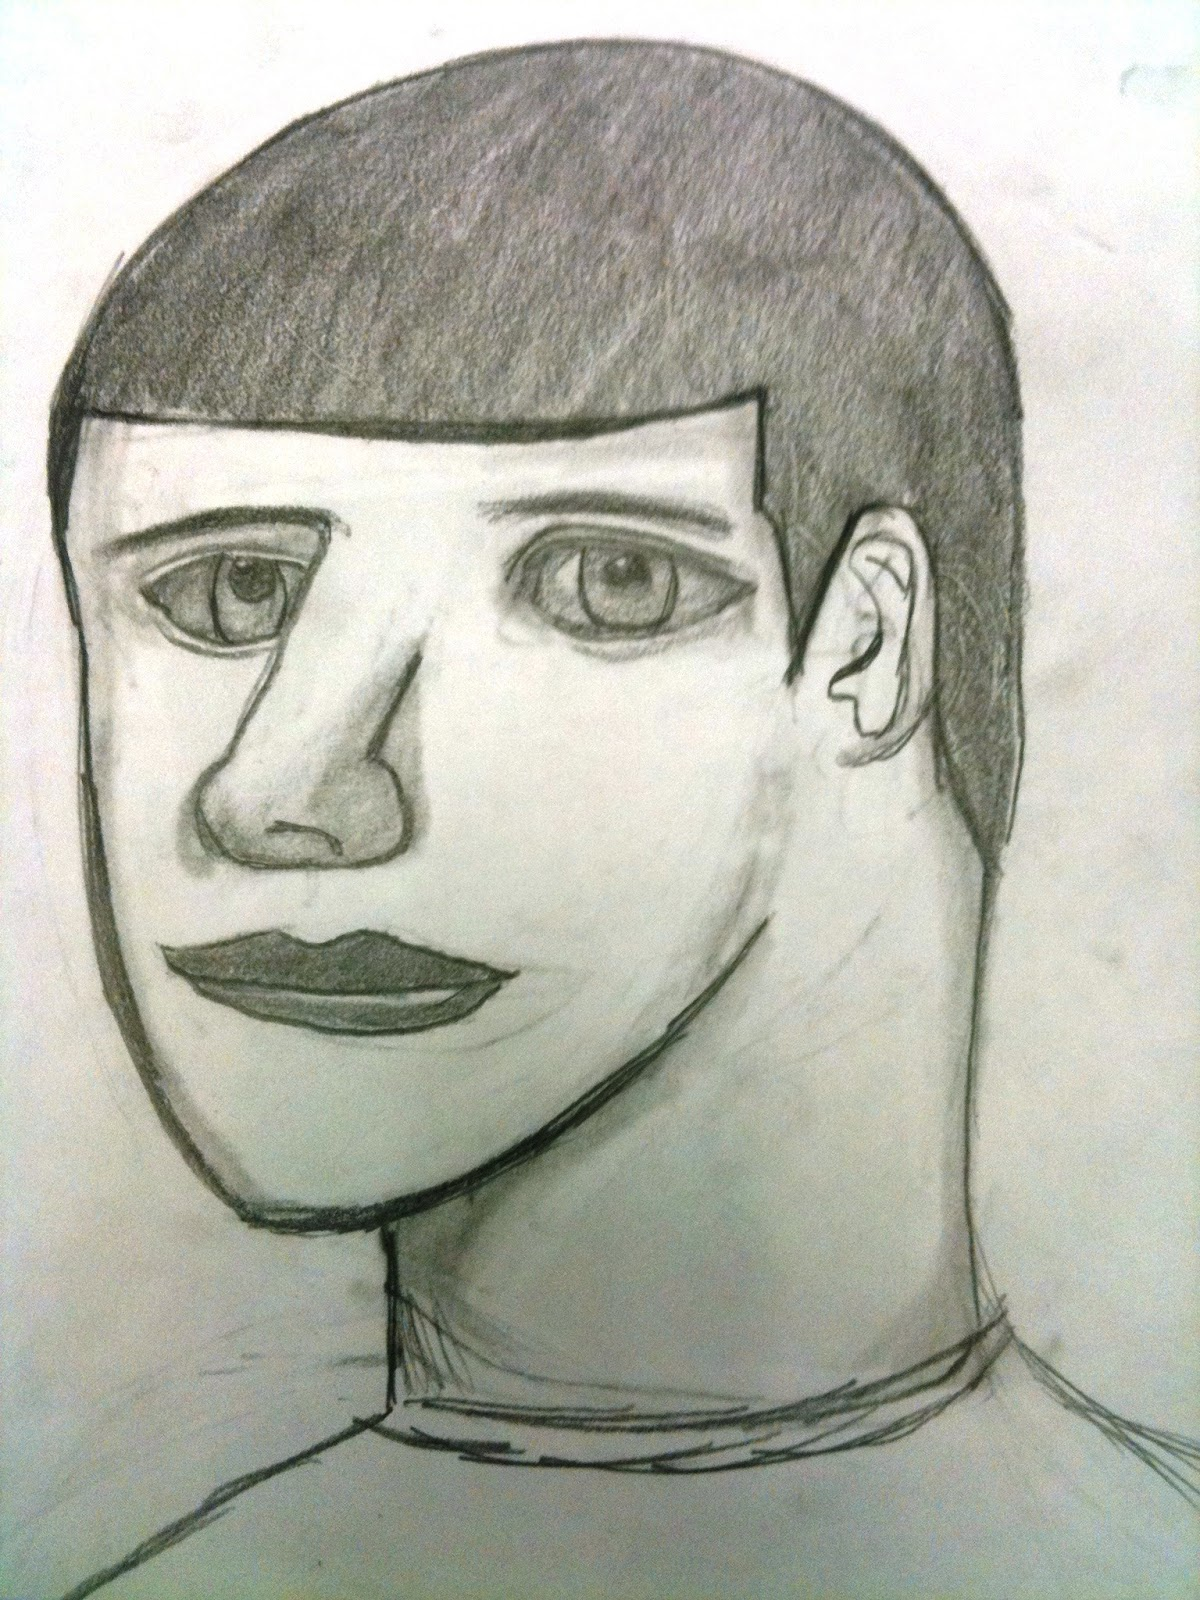 The Helpful Art Teacher: MORE ON DRAWING FACES